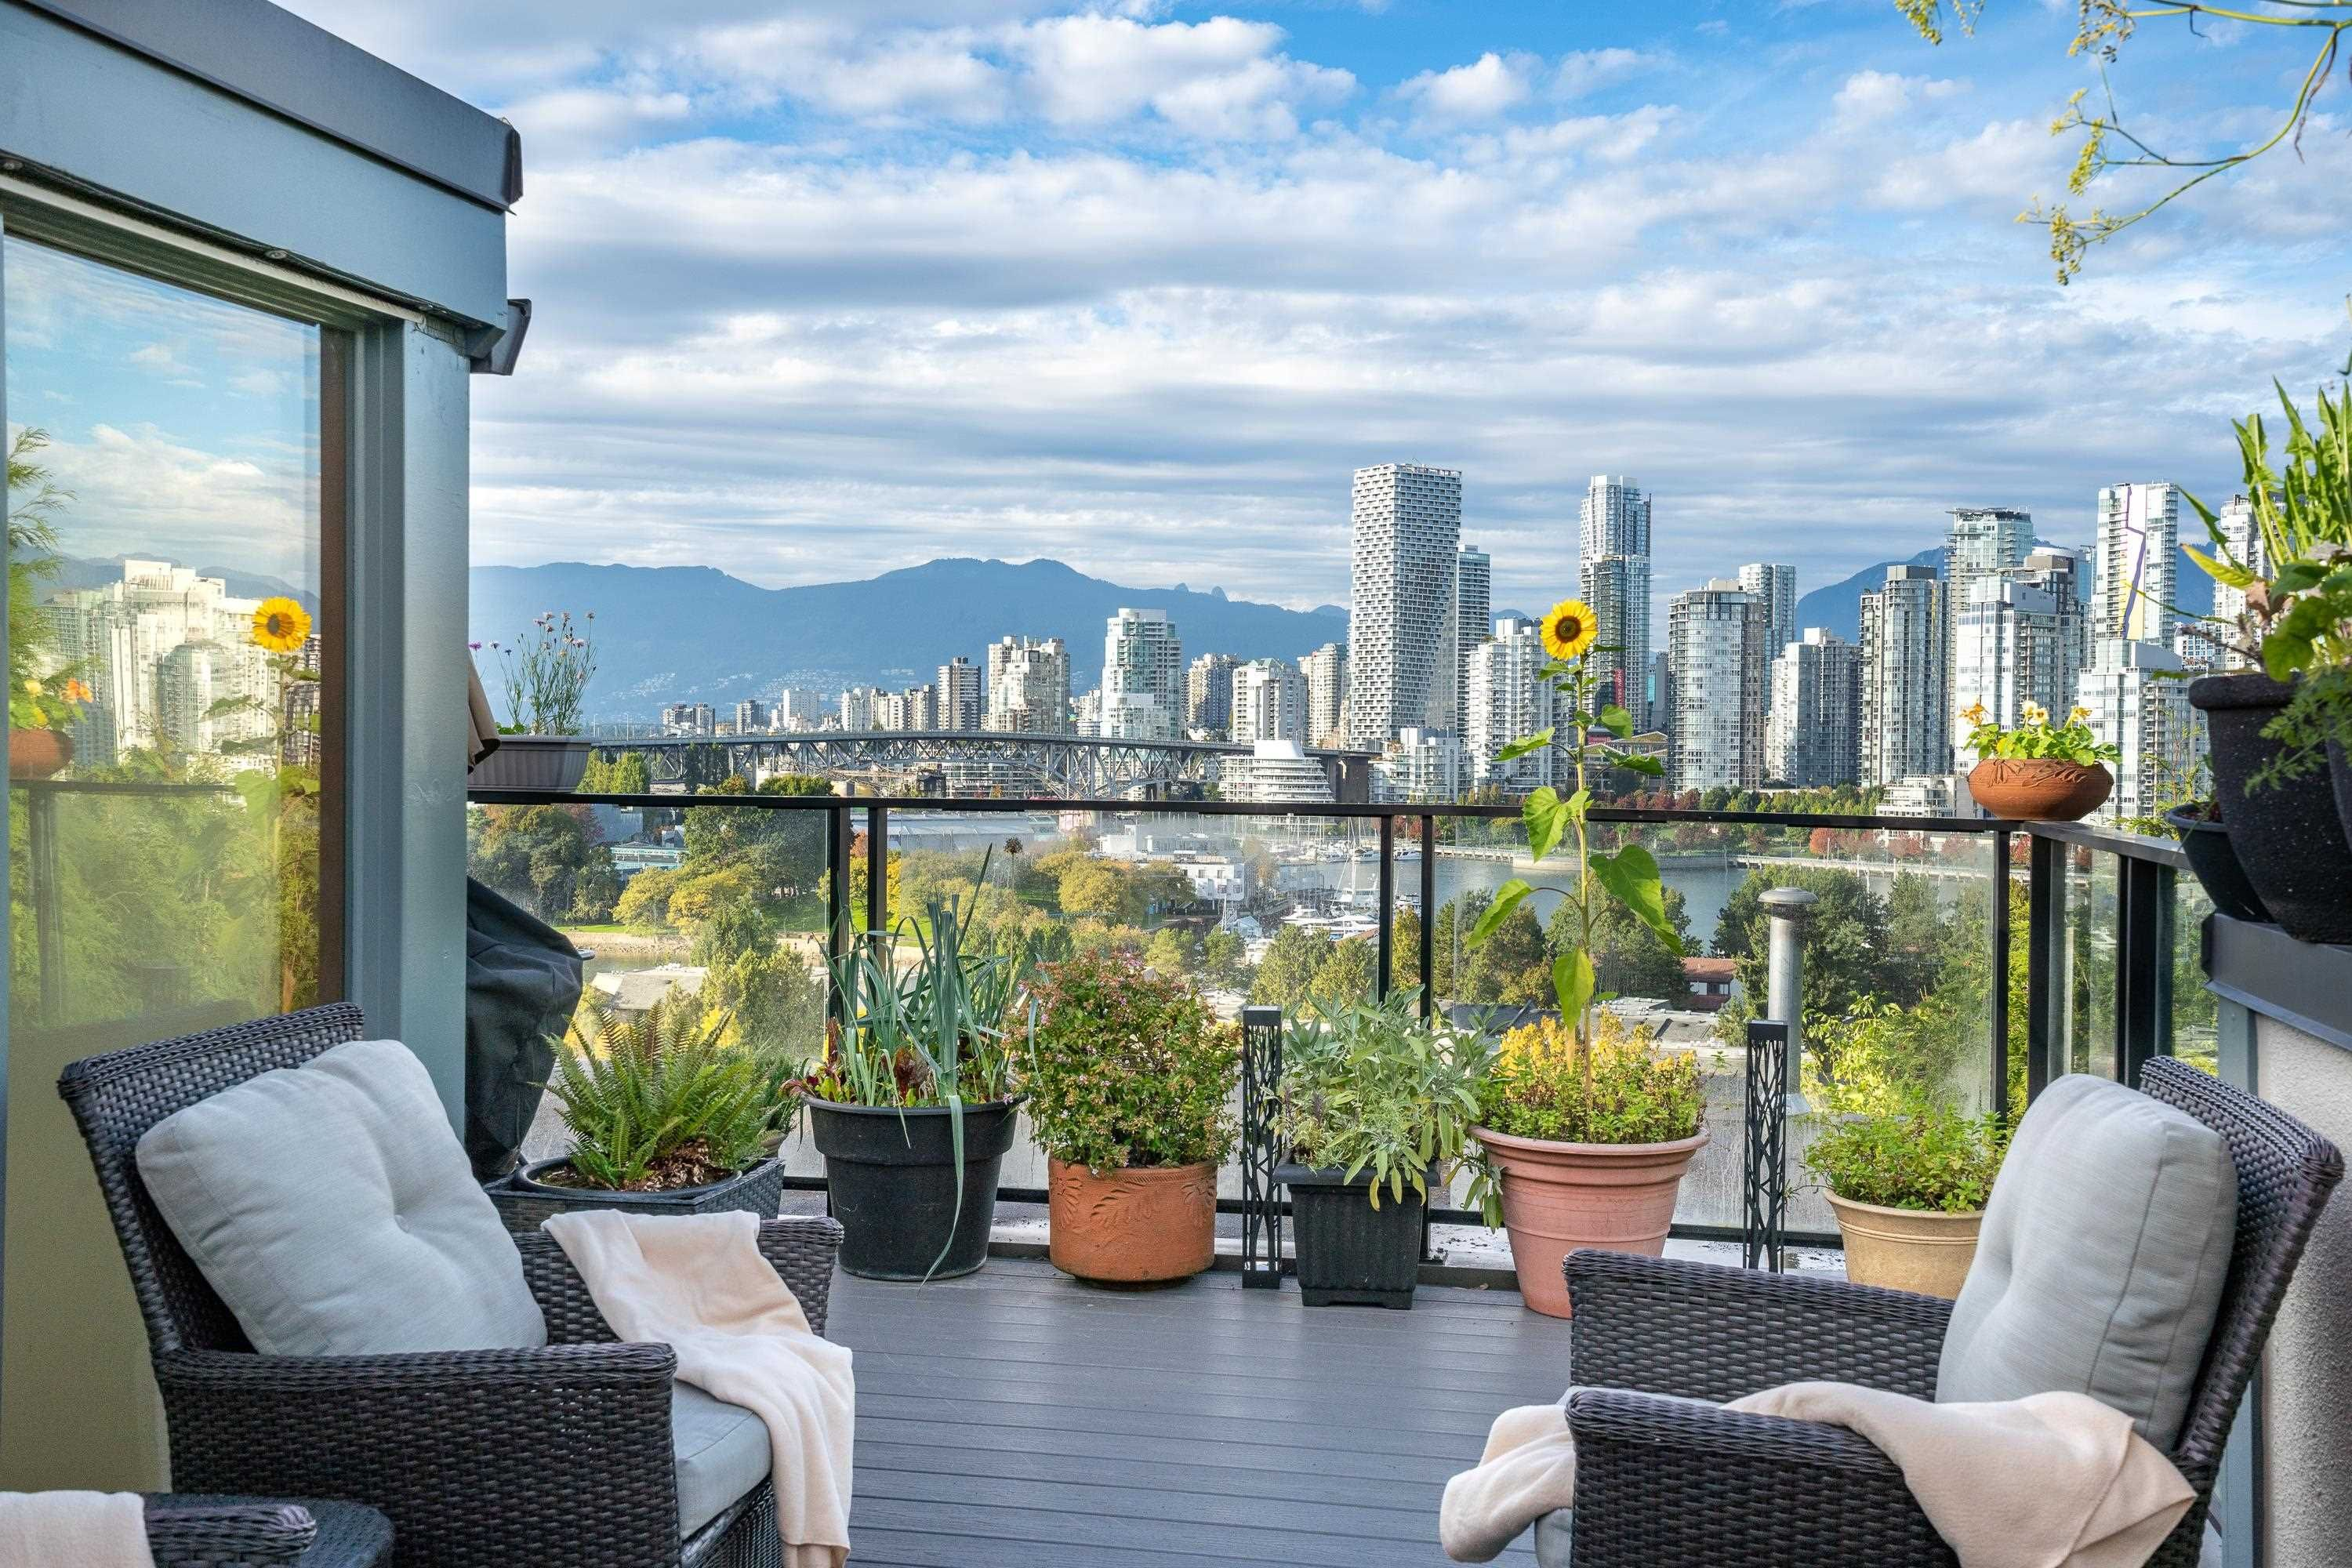 Main Photo: 1135 W 7TH Avenue in Vancouver: Fairview VW Townhouse for sale (Vancouver West)  : MLS®# R2625169